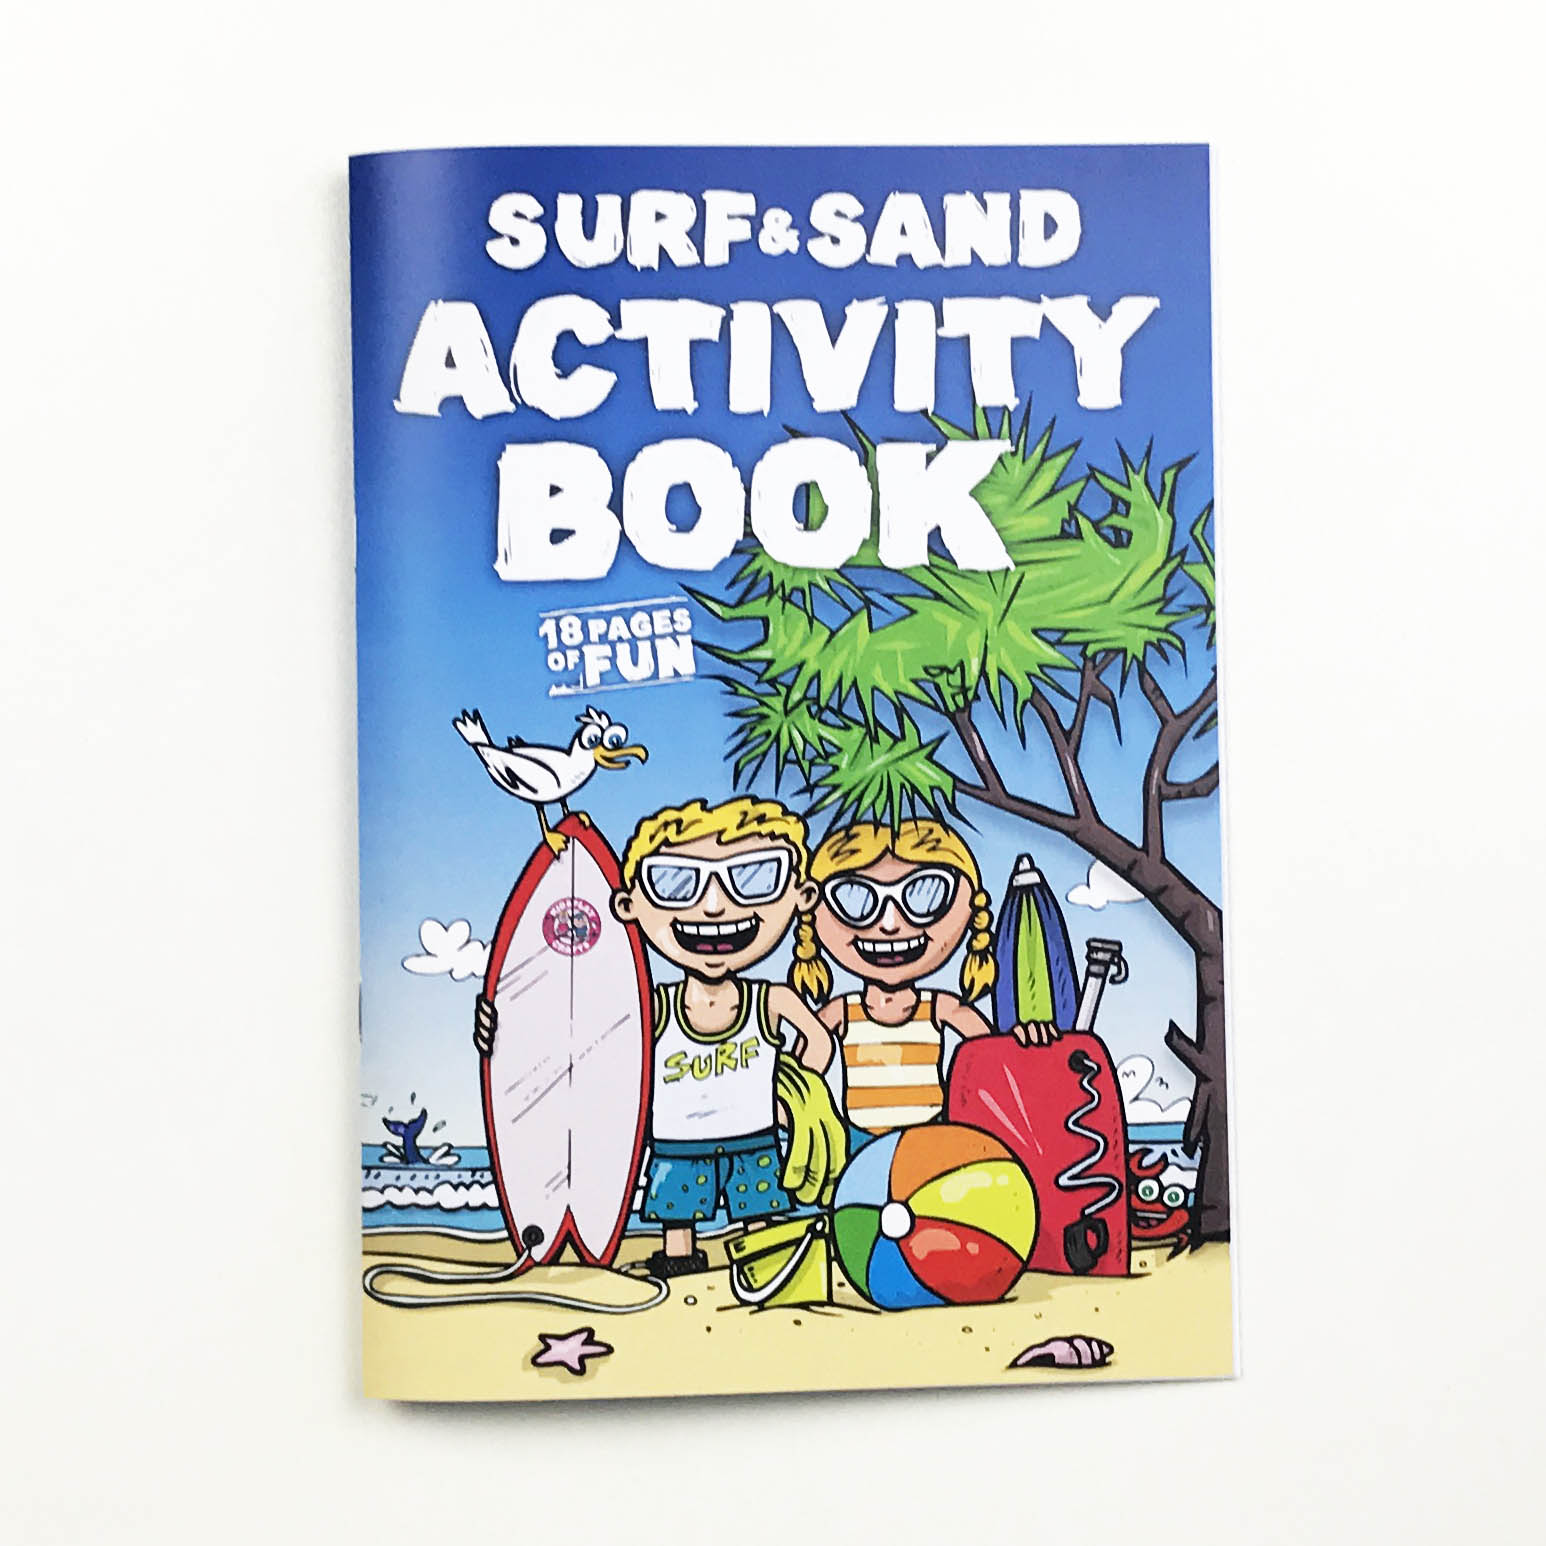 Surf & Sand Activity and colouring in Book for kids - keeps kids busy!